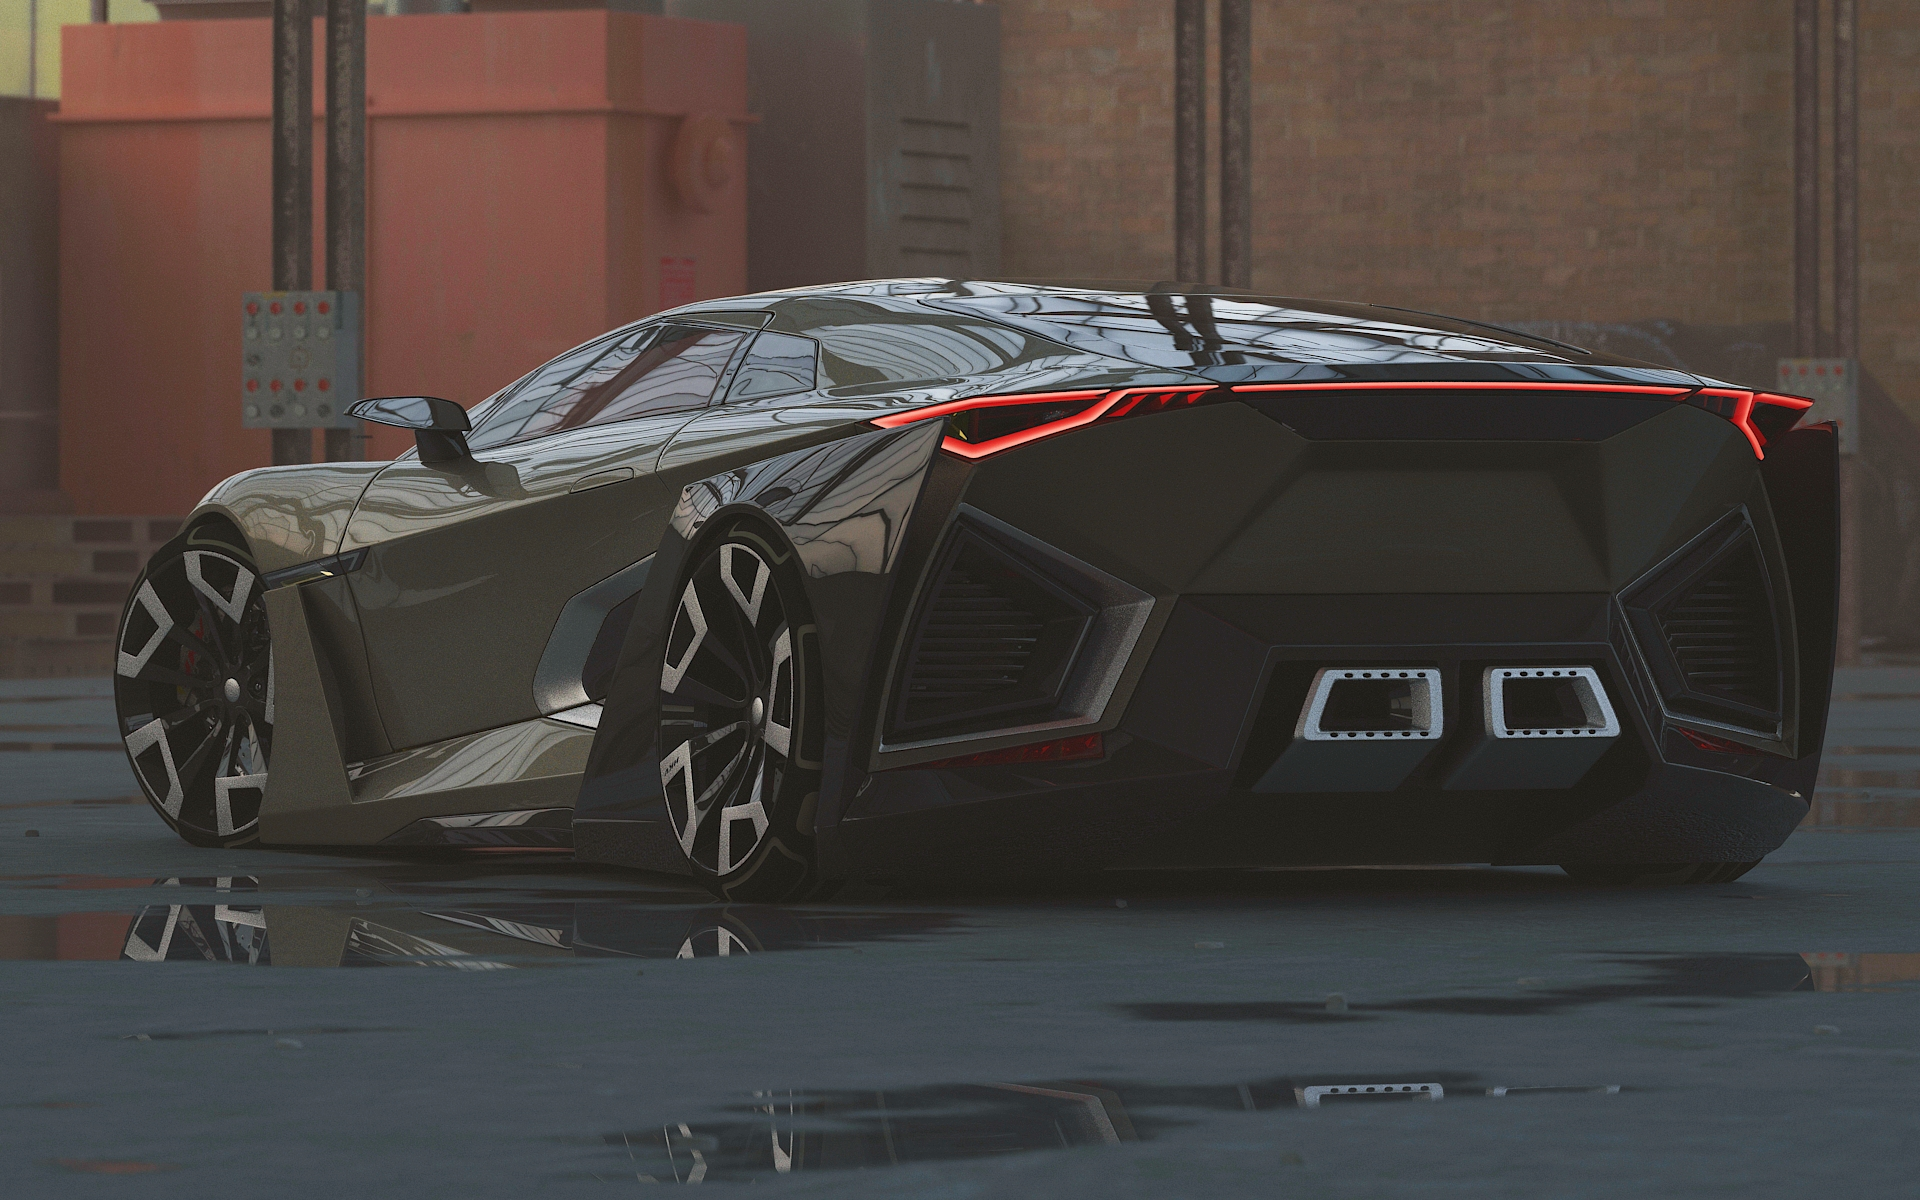 HKV Coupe in 3d max vray 3.0 image